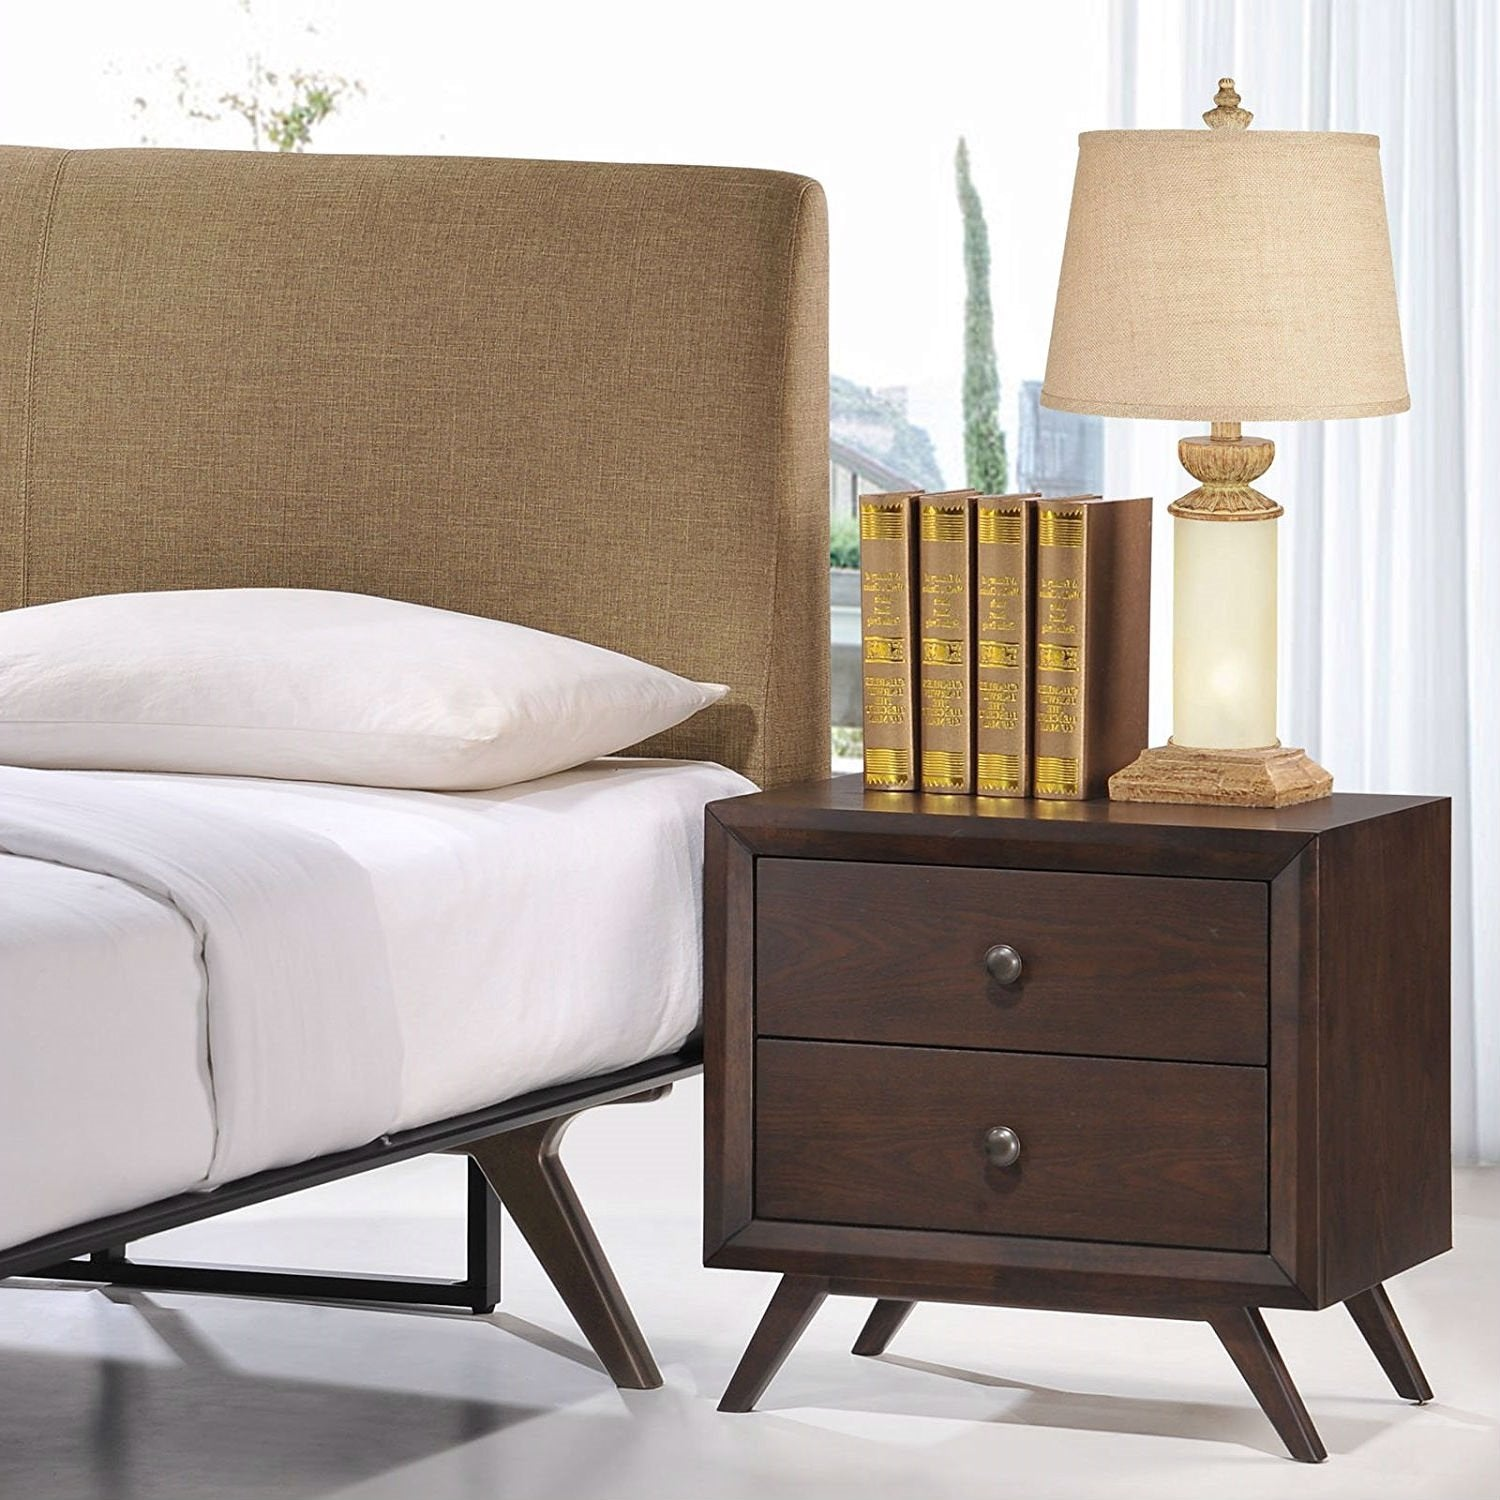 Mid-Century Modern Style End Table Nightstand in Cappuccino Wood Finish